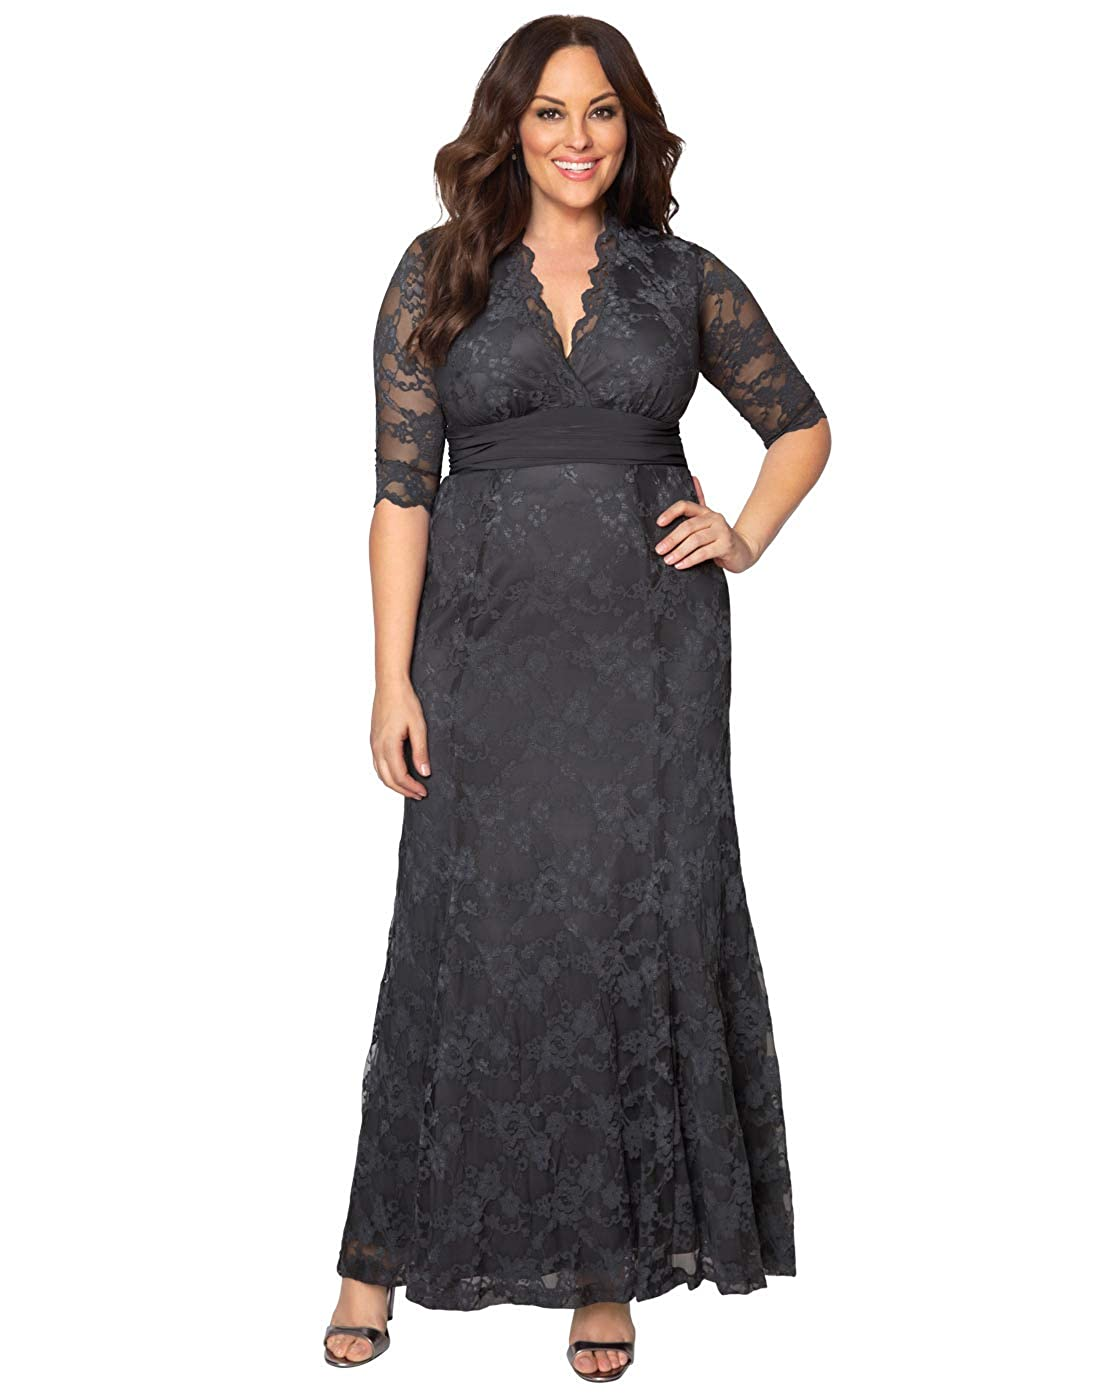 130f41174c2 Amazon.com  Kiyonna Women s Plus Size Screen Siren Lace Gown  Clothing